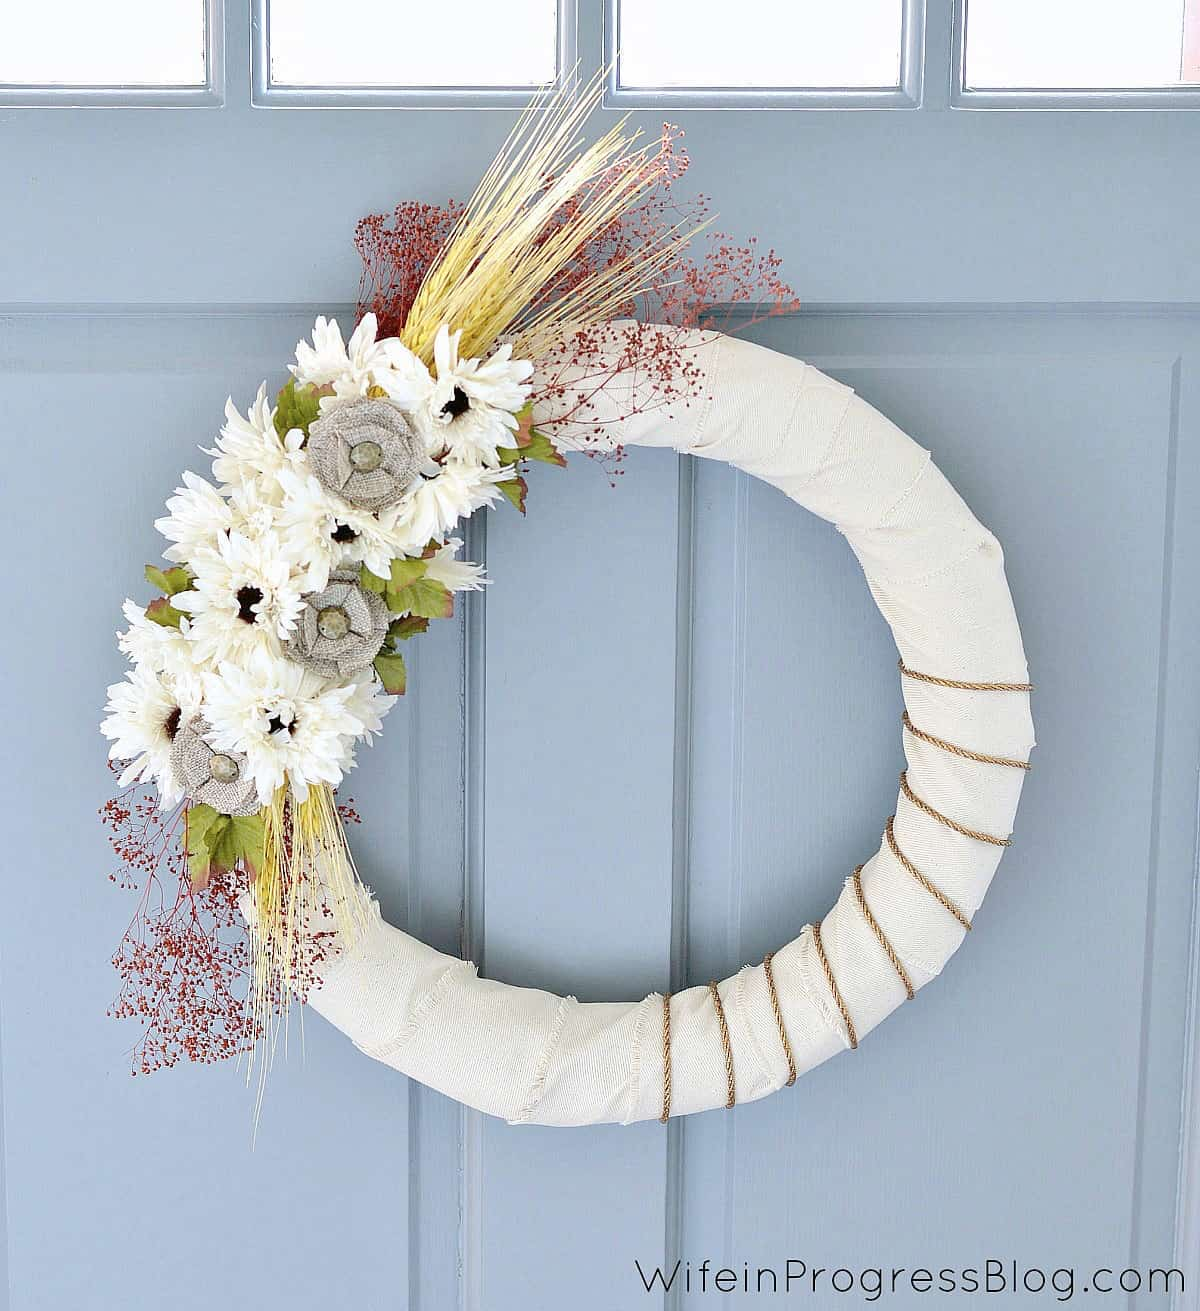 Hanging a wreath on your front door is the perfect way to welcome fall to your home